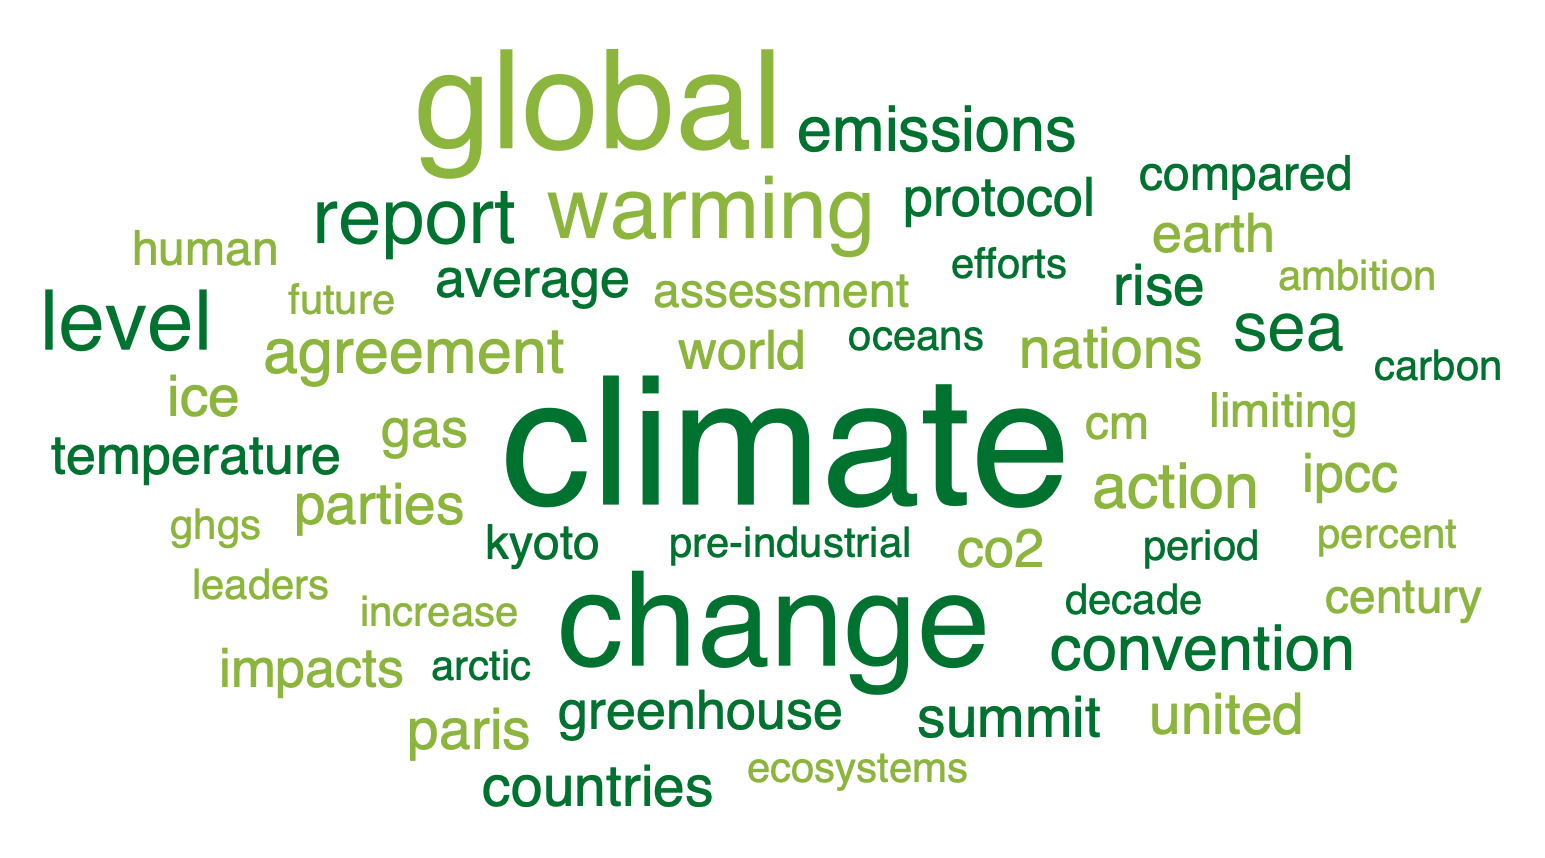 A word cloud from MAXQDA2020, after applying a stop words list.